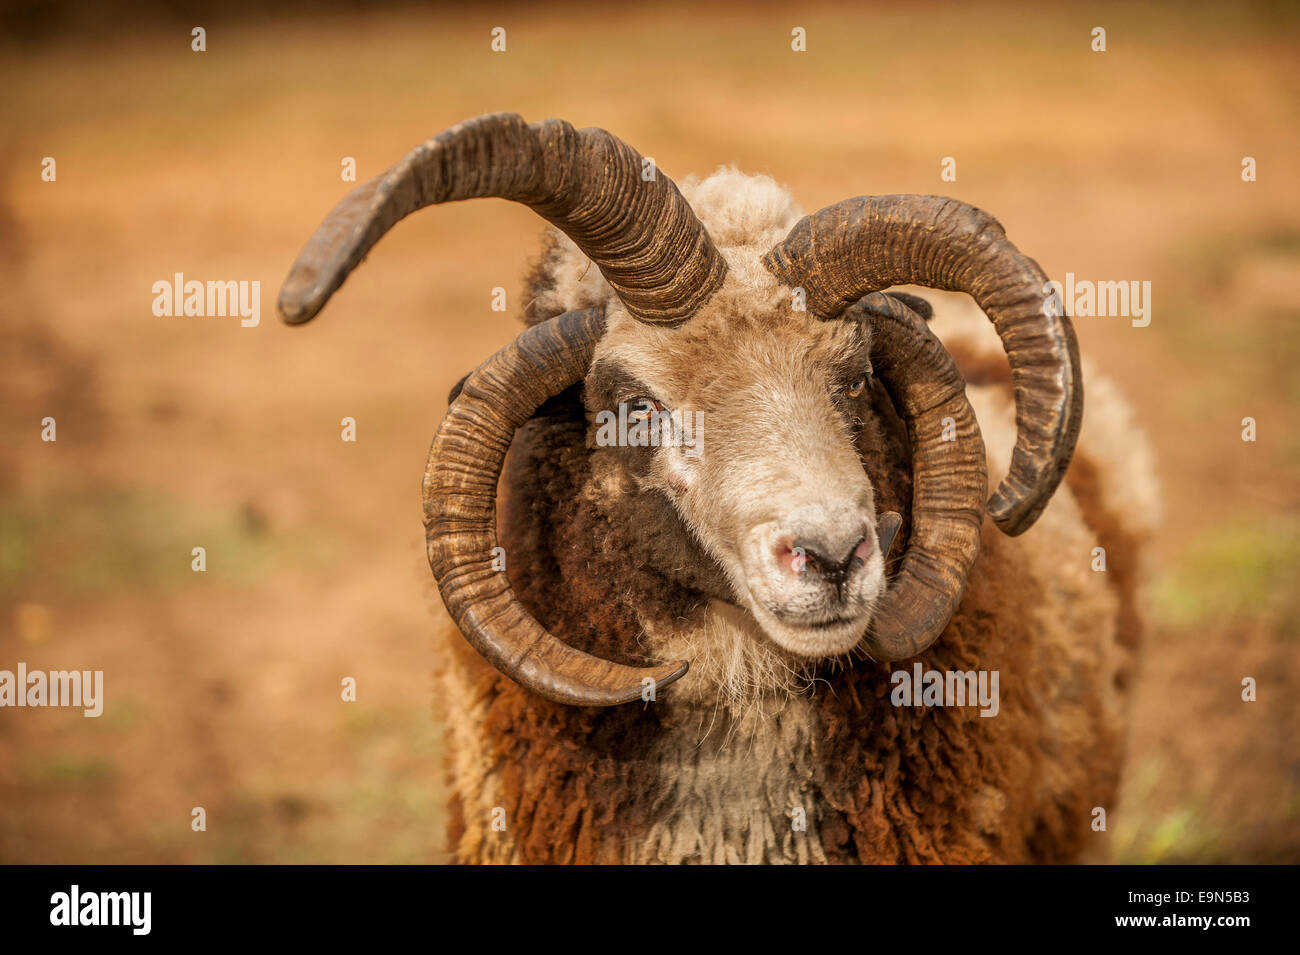 A Jacob sheep with multi-colored wool. - Stock Image